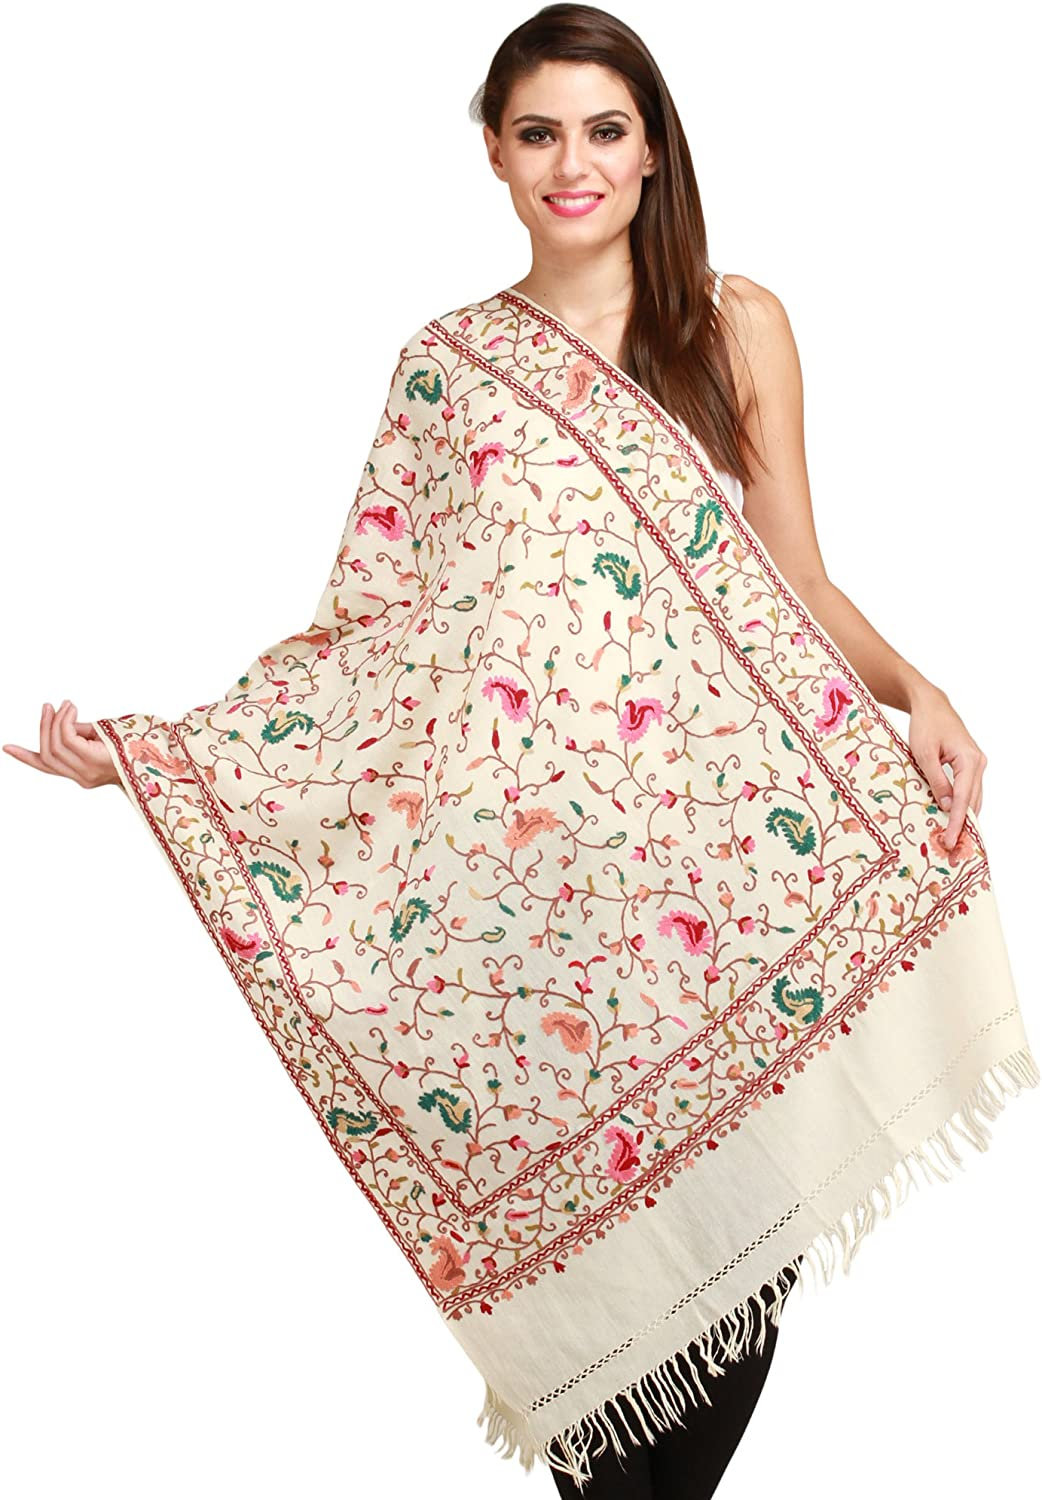 Exotic India Ivory Ari Stole with Embroidered Paisleys in Multi-colo - Off-White